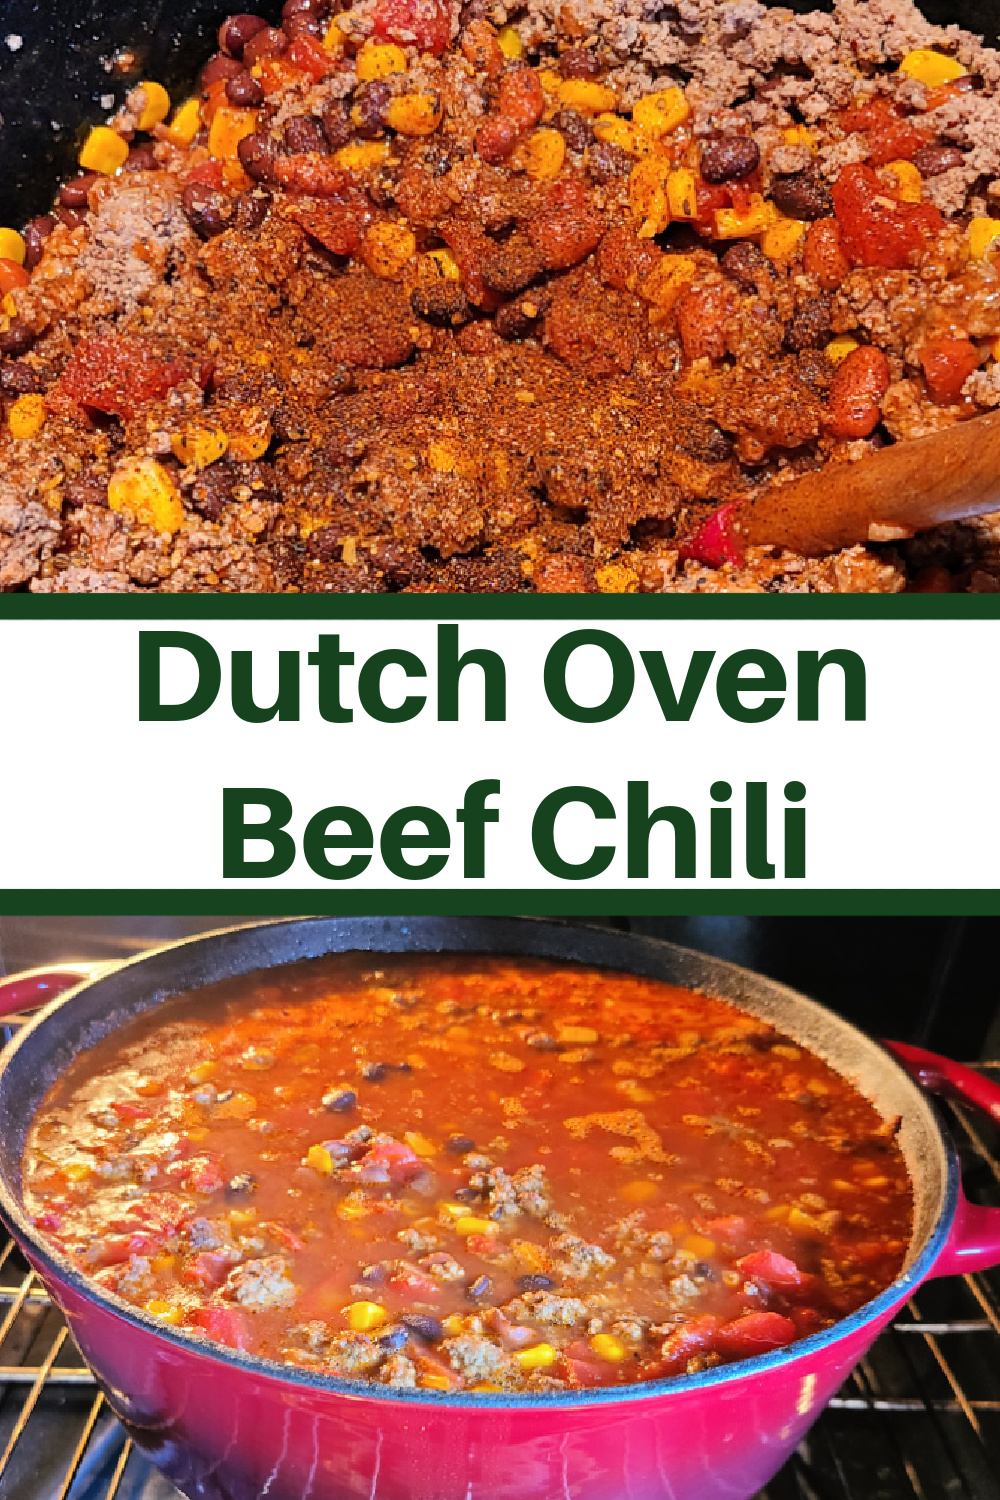 This Dutch oven Beef Chili is a huge hit with the whole family!! Just dump everything in and cook on low for a cozy comfort dinner. Easy to change up the spices and also will warm up the house with the smell of this amazing comfort food dinner!